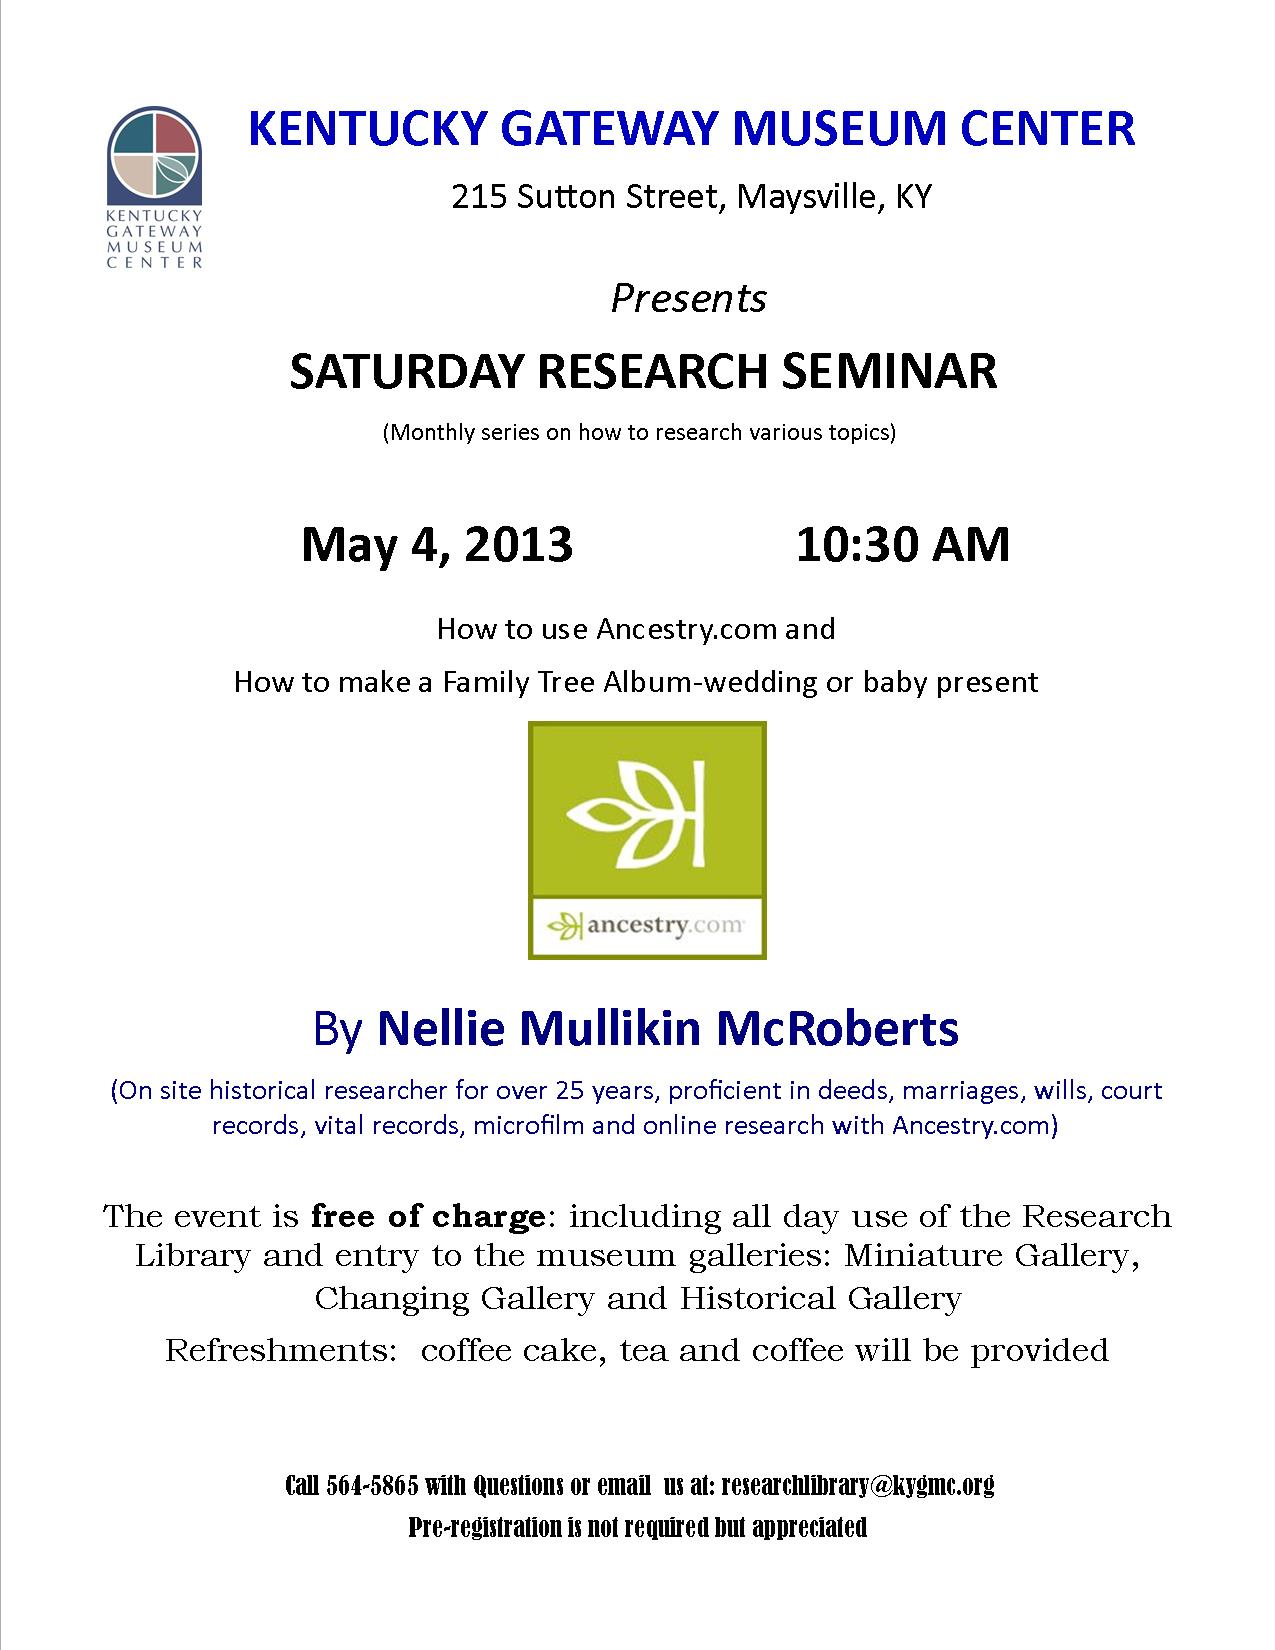 Kentucky Gateway Museum Center – Presents Saturday Research Seminar